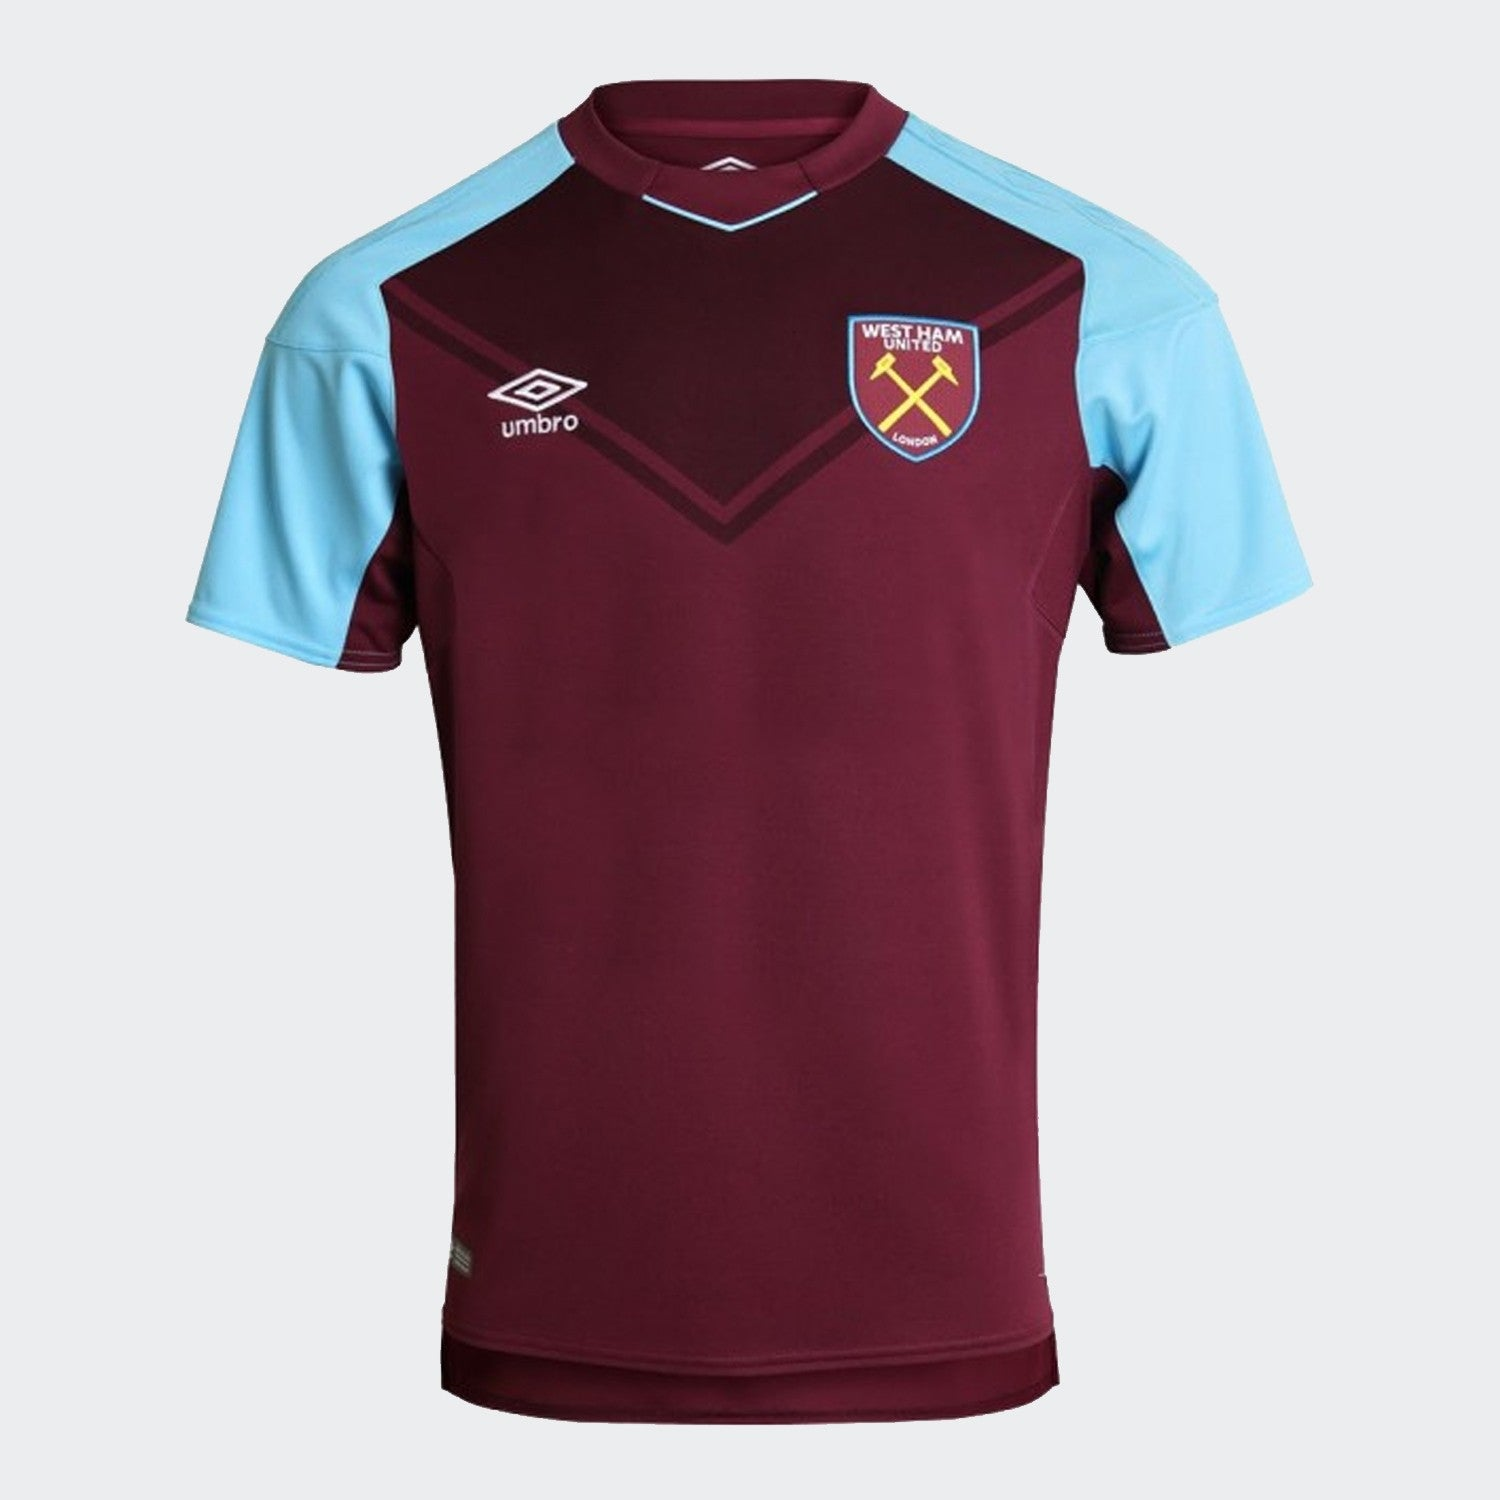 Kid's West Ham United 17/18 Home Jersey - New Claret/Bluefish